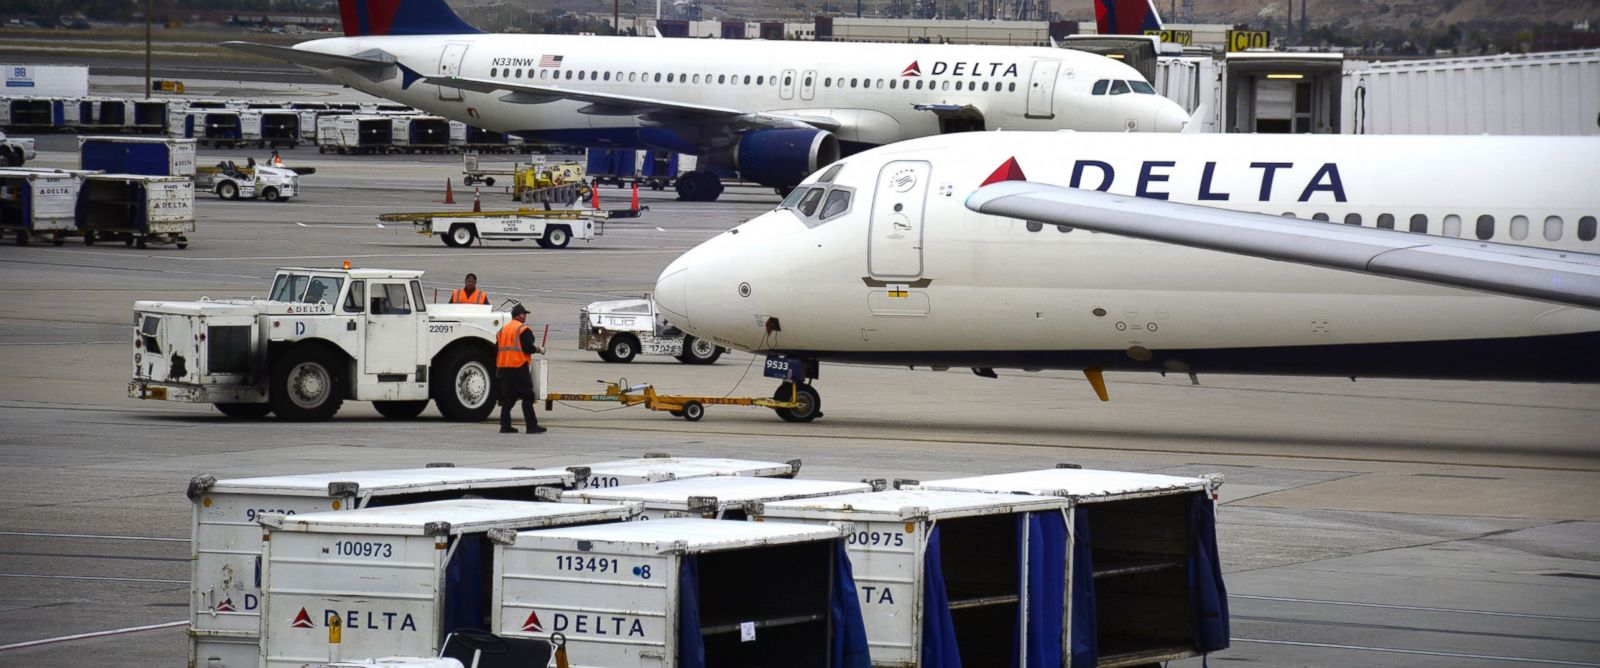 Can Delta flights be tracked online?